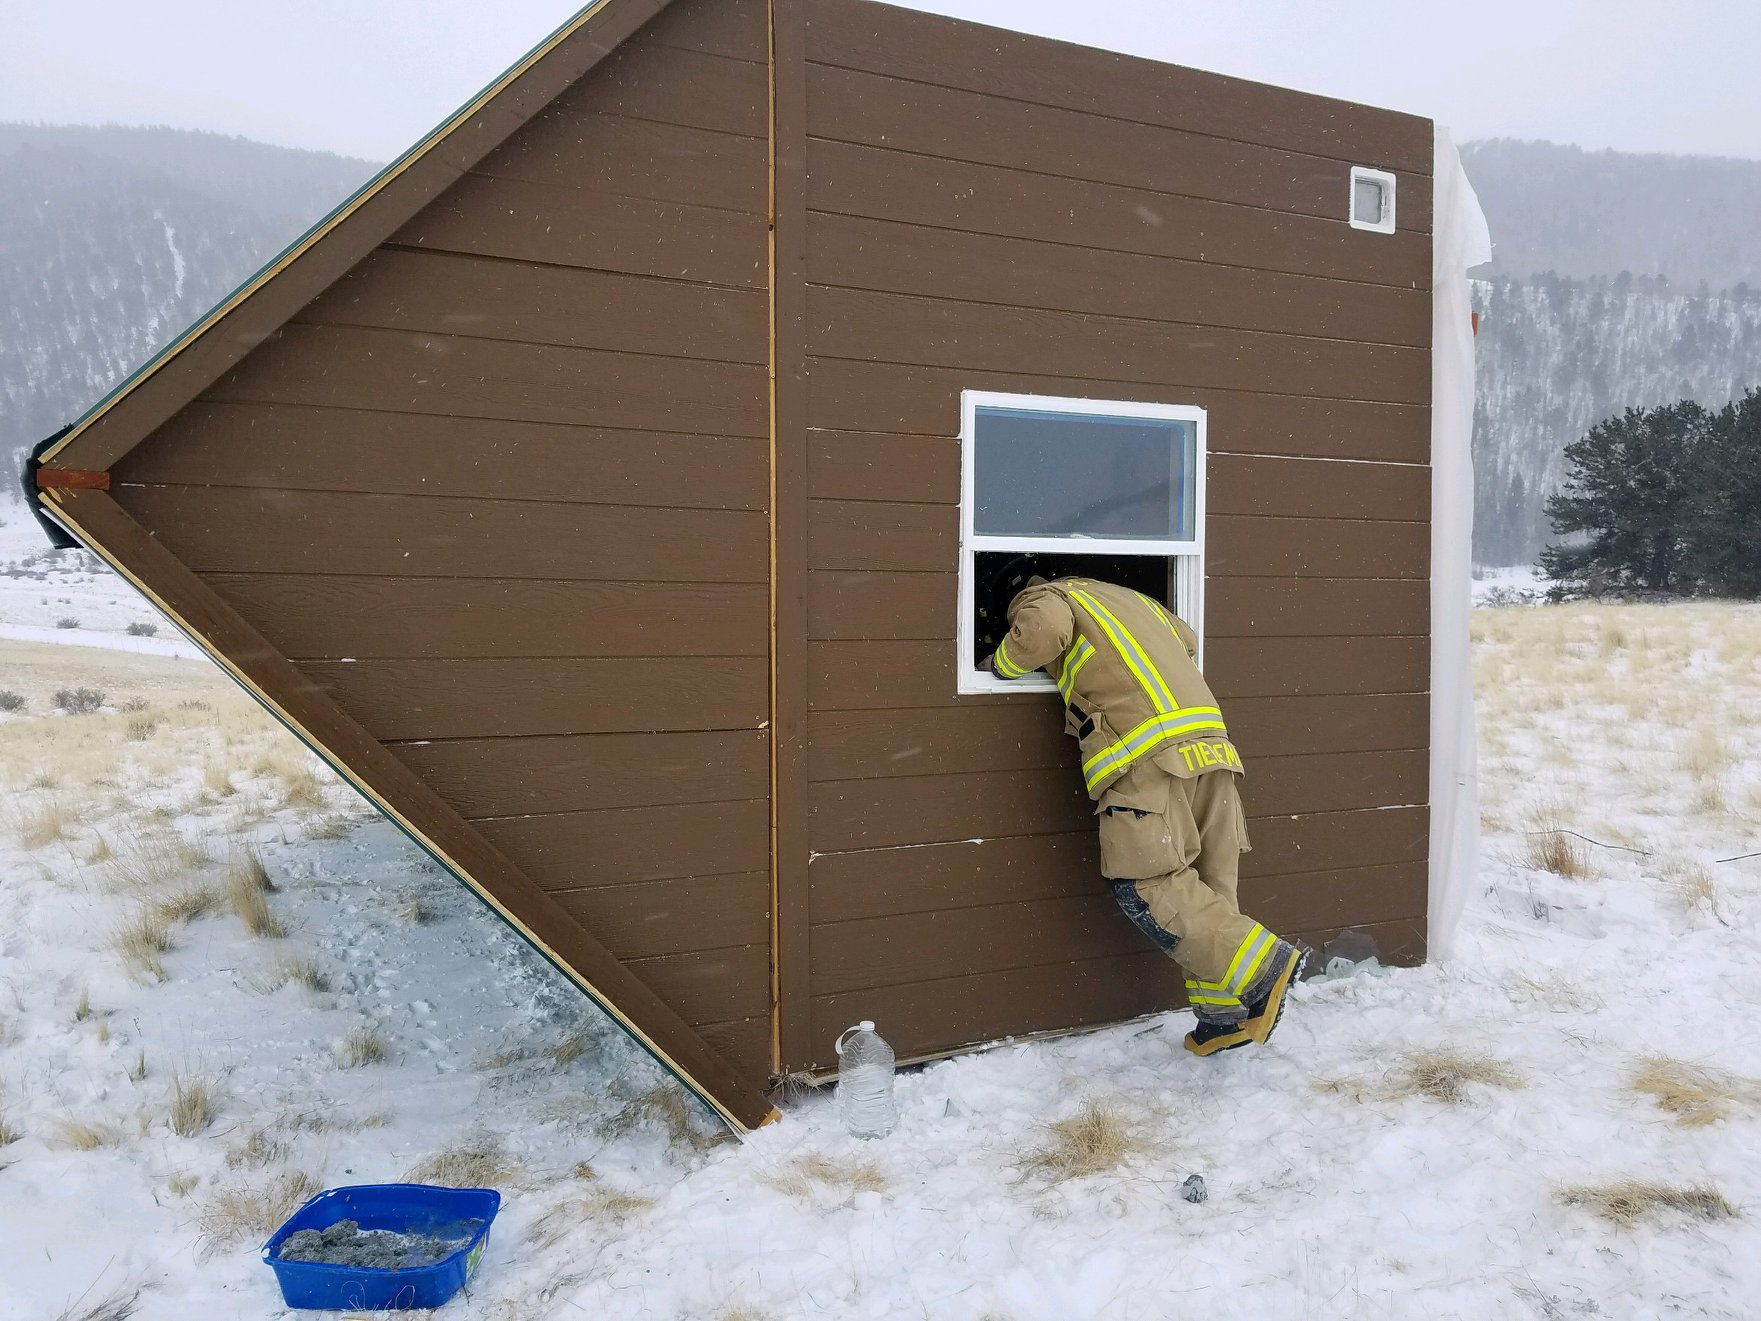 Tiny home knocked over in Colorado blizzard. (Cripple Creek Fire Rescue)